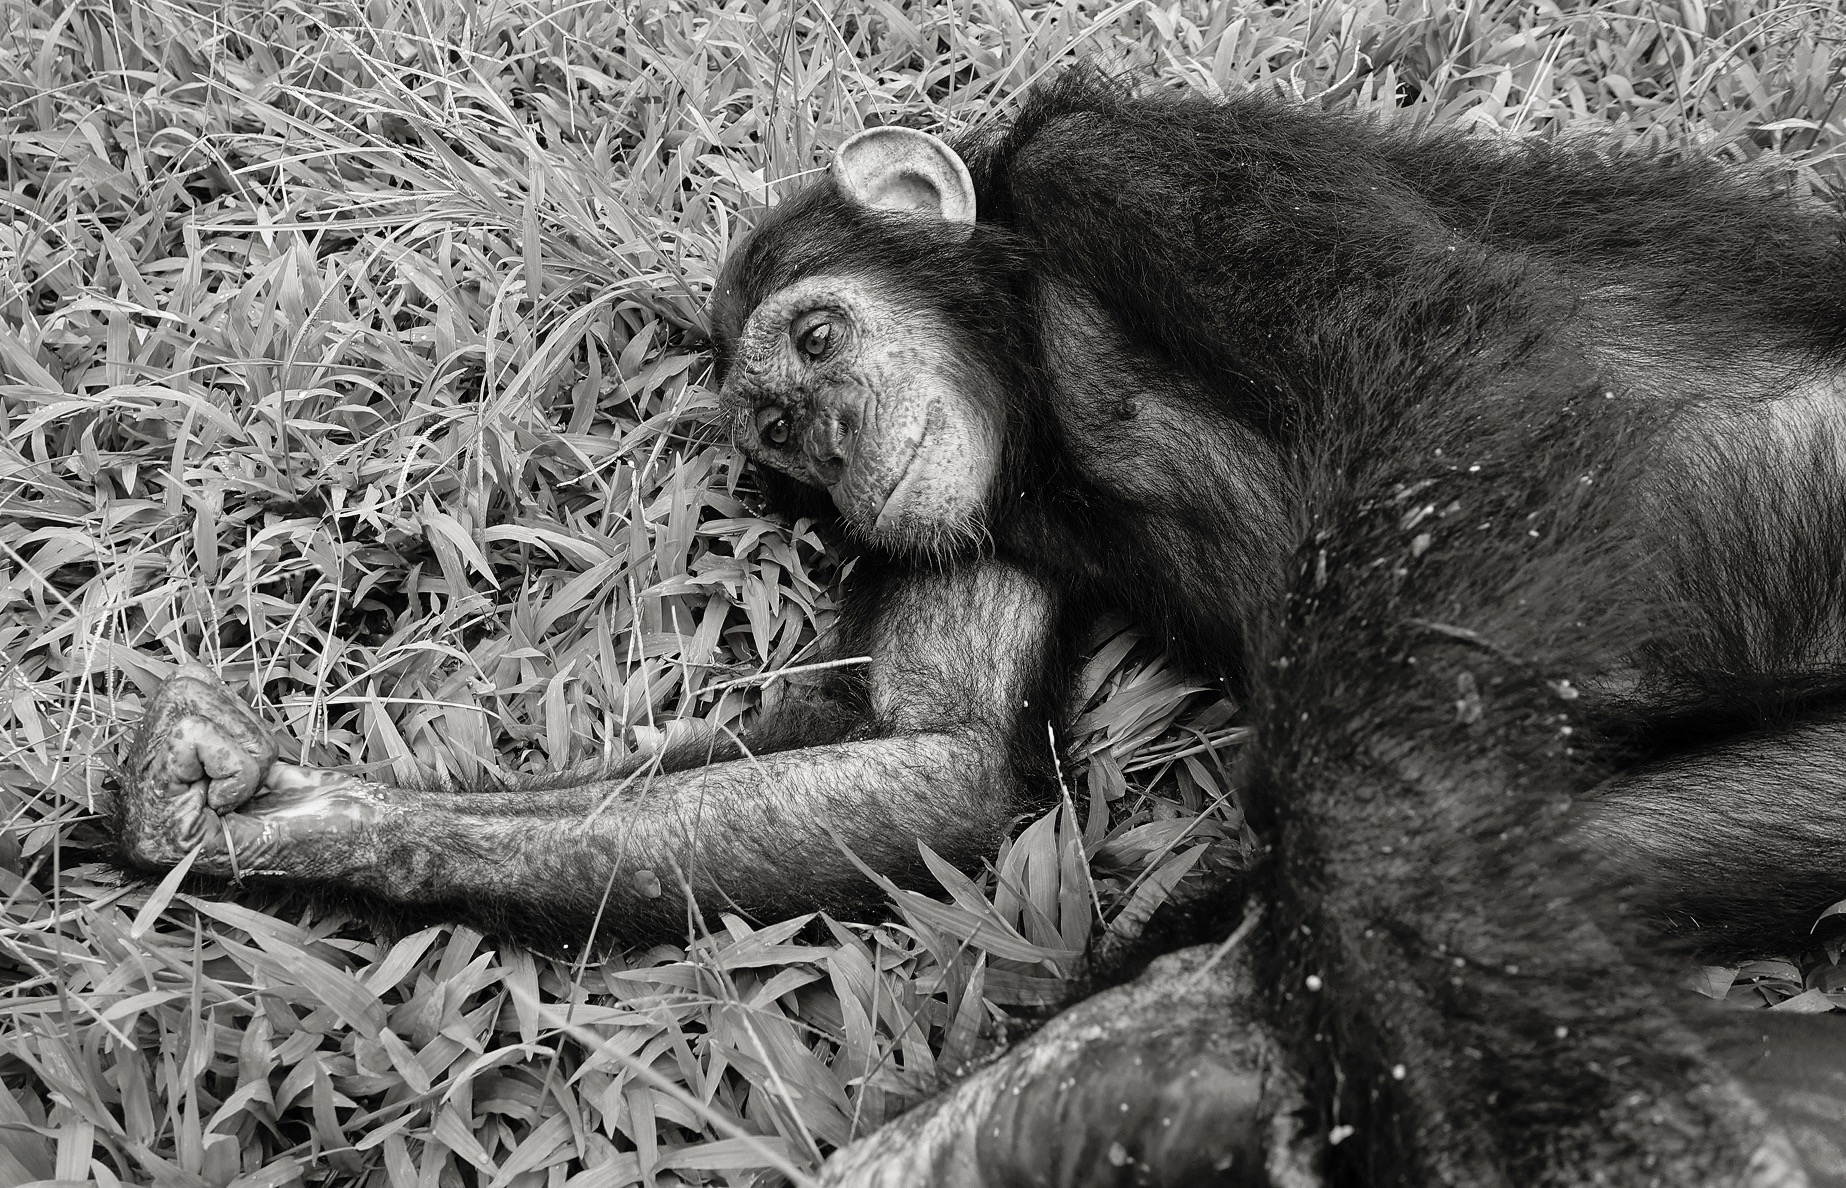 A young chimpanzee lies in the grass with an arm stretched out and head rest on its shoulder